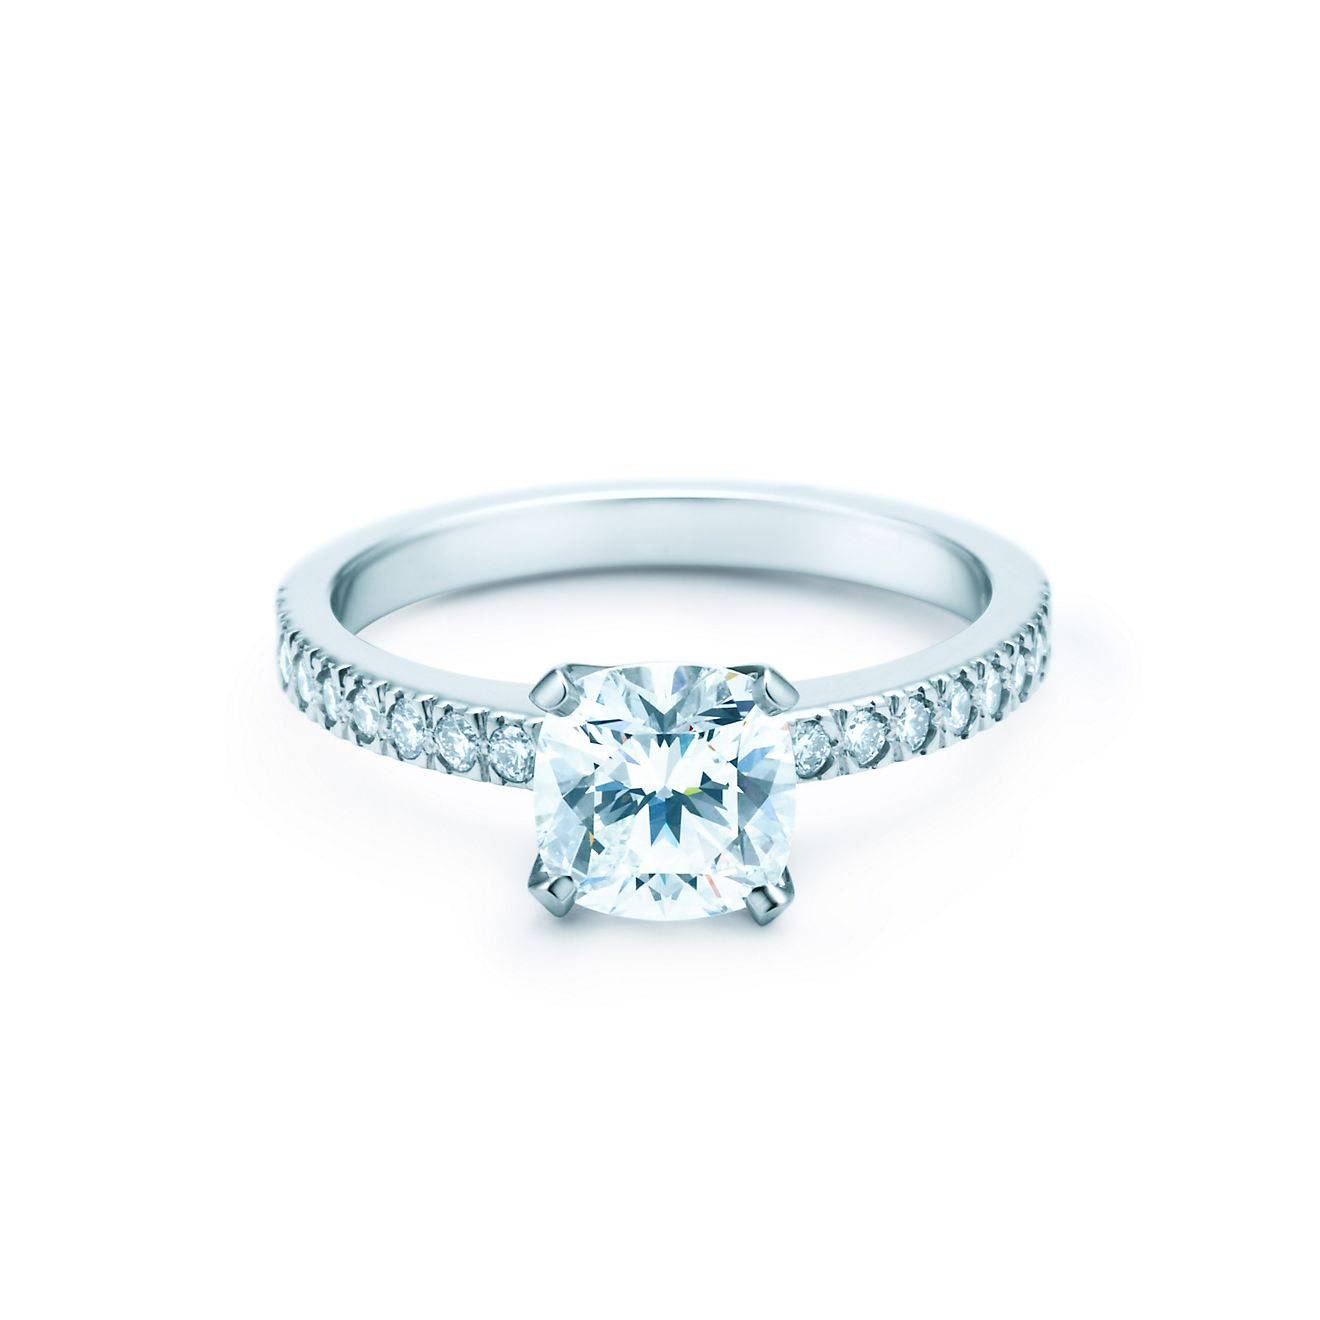 tiffany novo tiffany novo is a brilliant cushion cut creation with ...